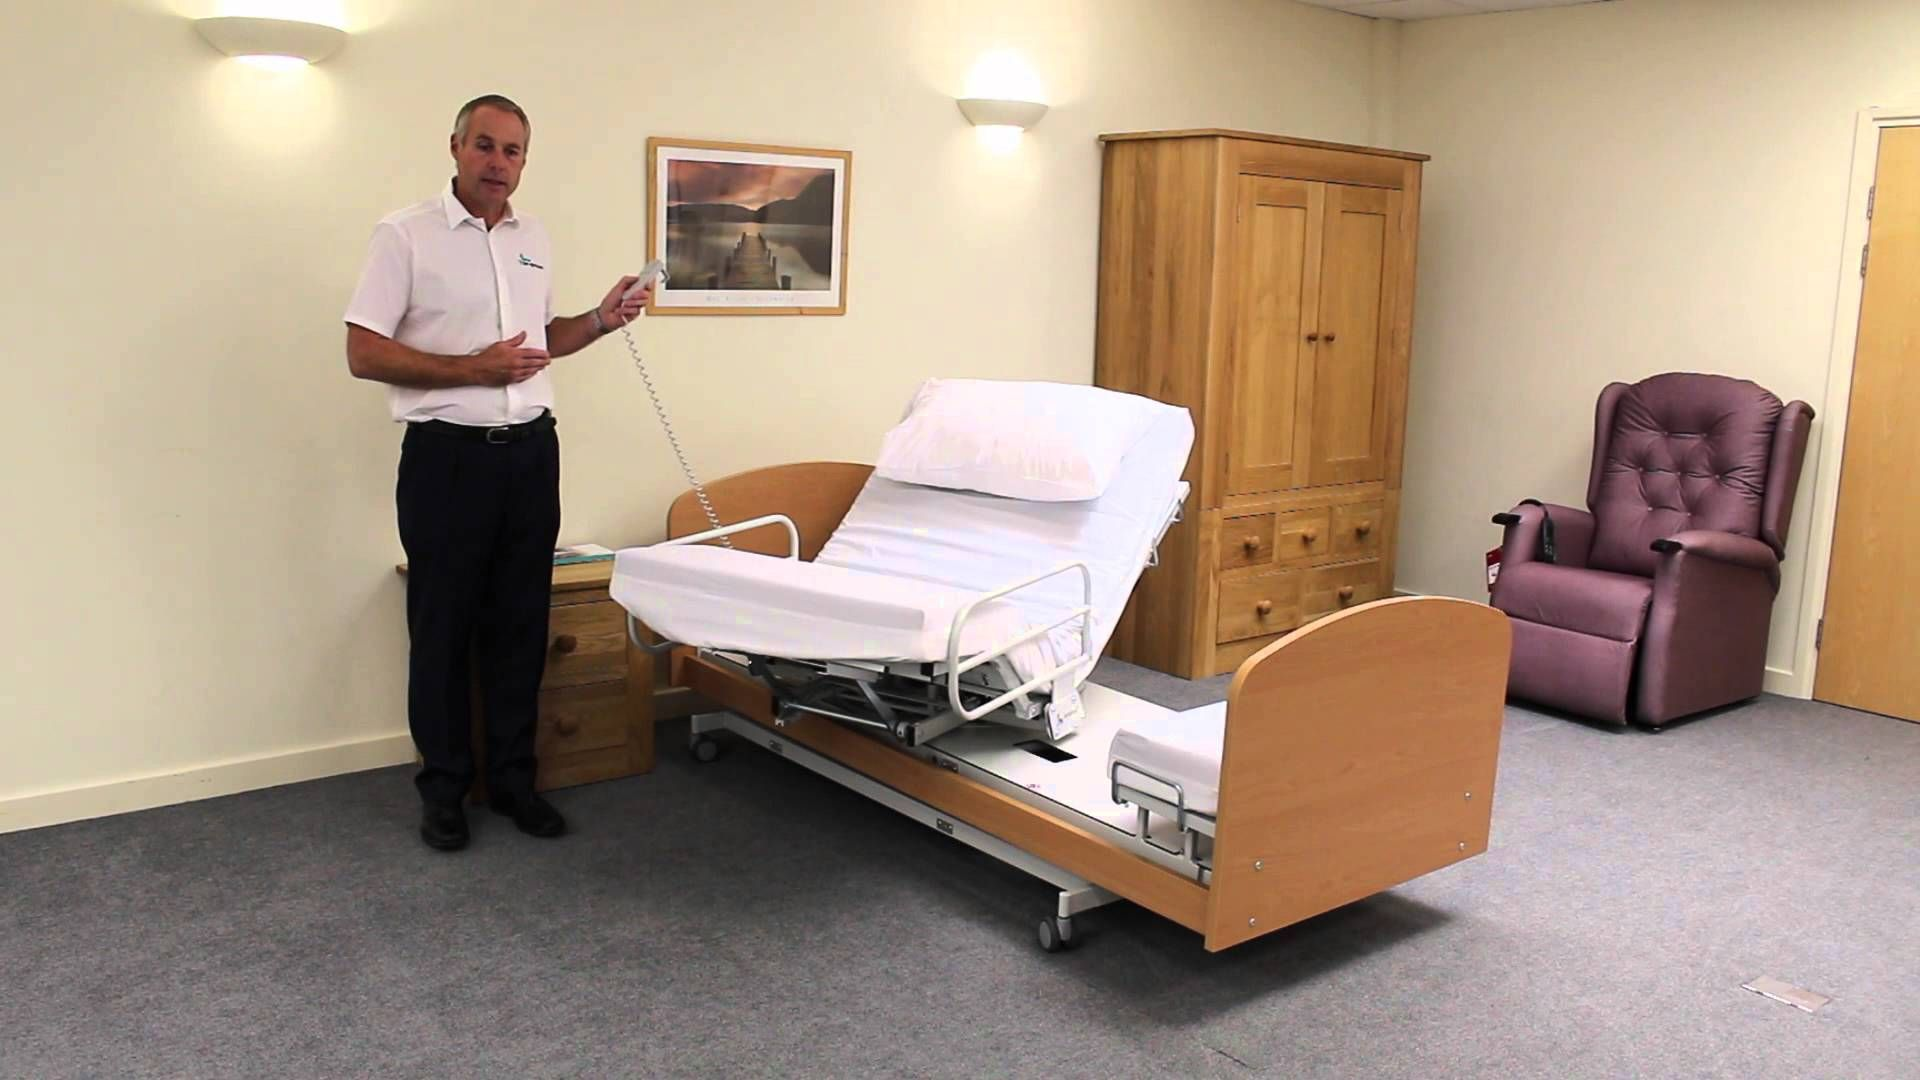 The Rotoflex Rotational Care Bed from Theraposture